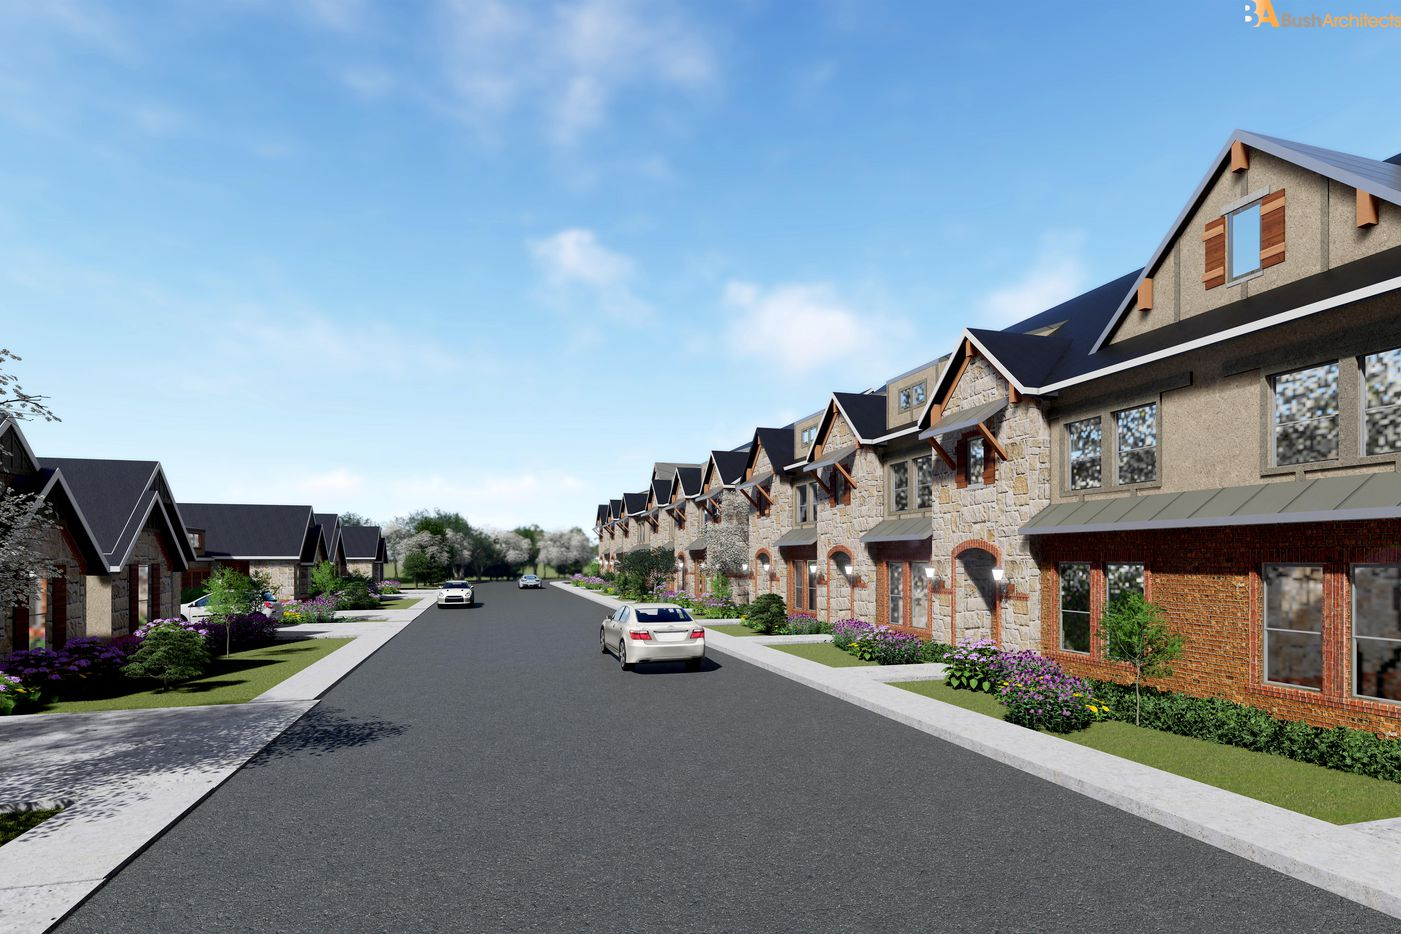 The planned Iron Horse Village will have more than 300 homes.